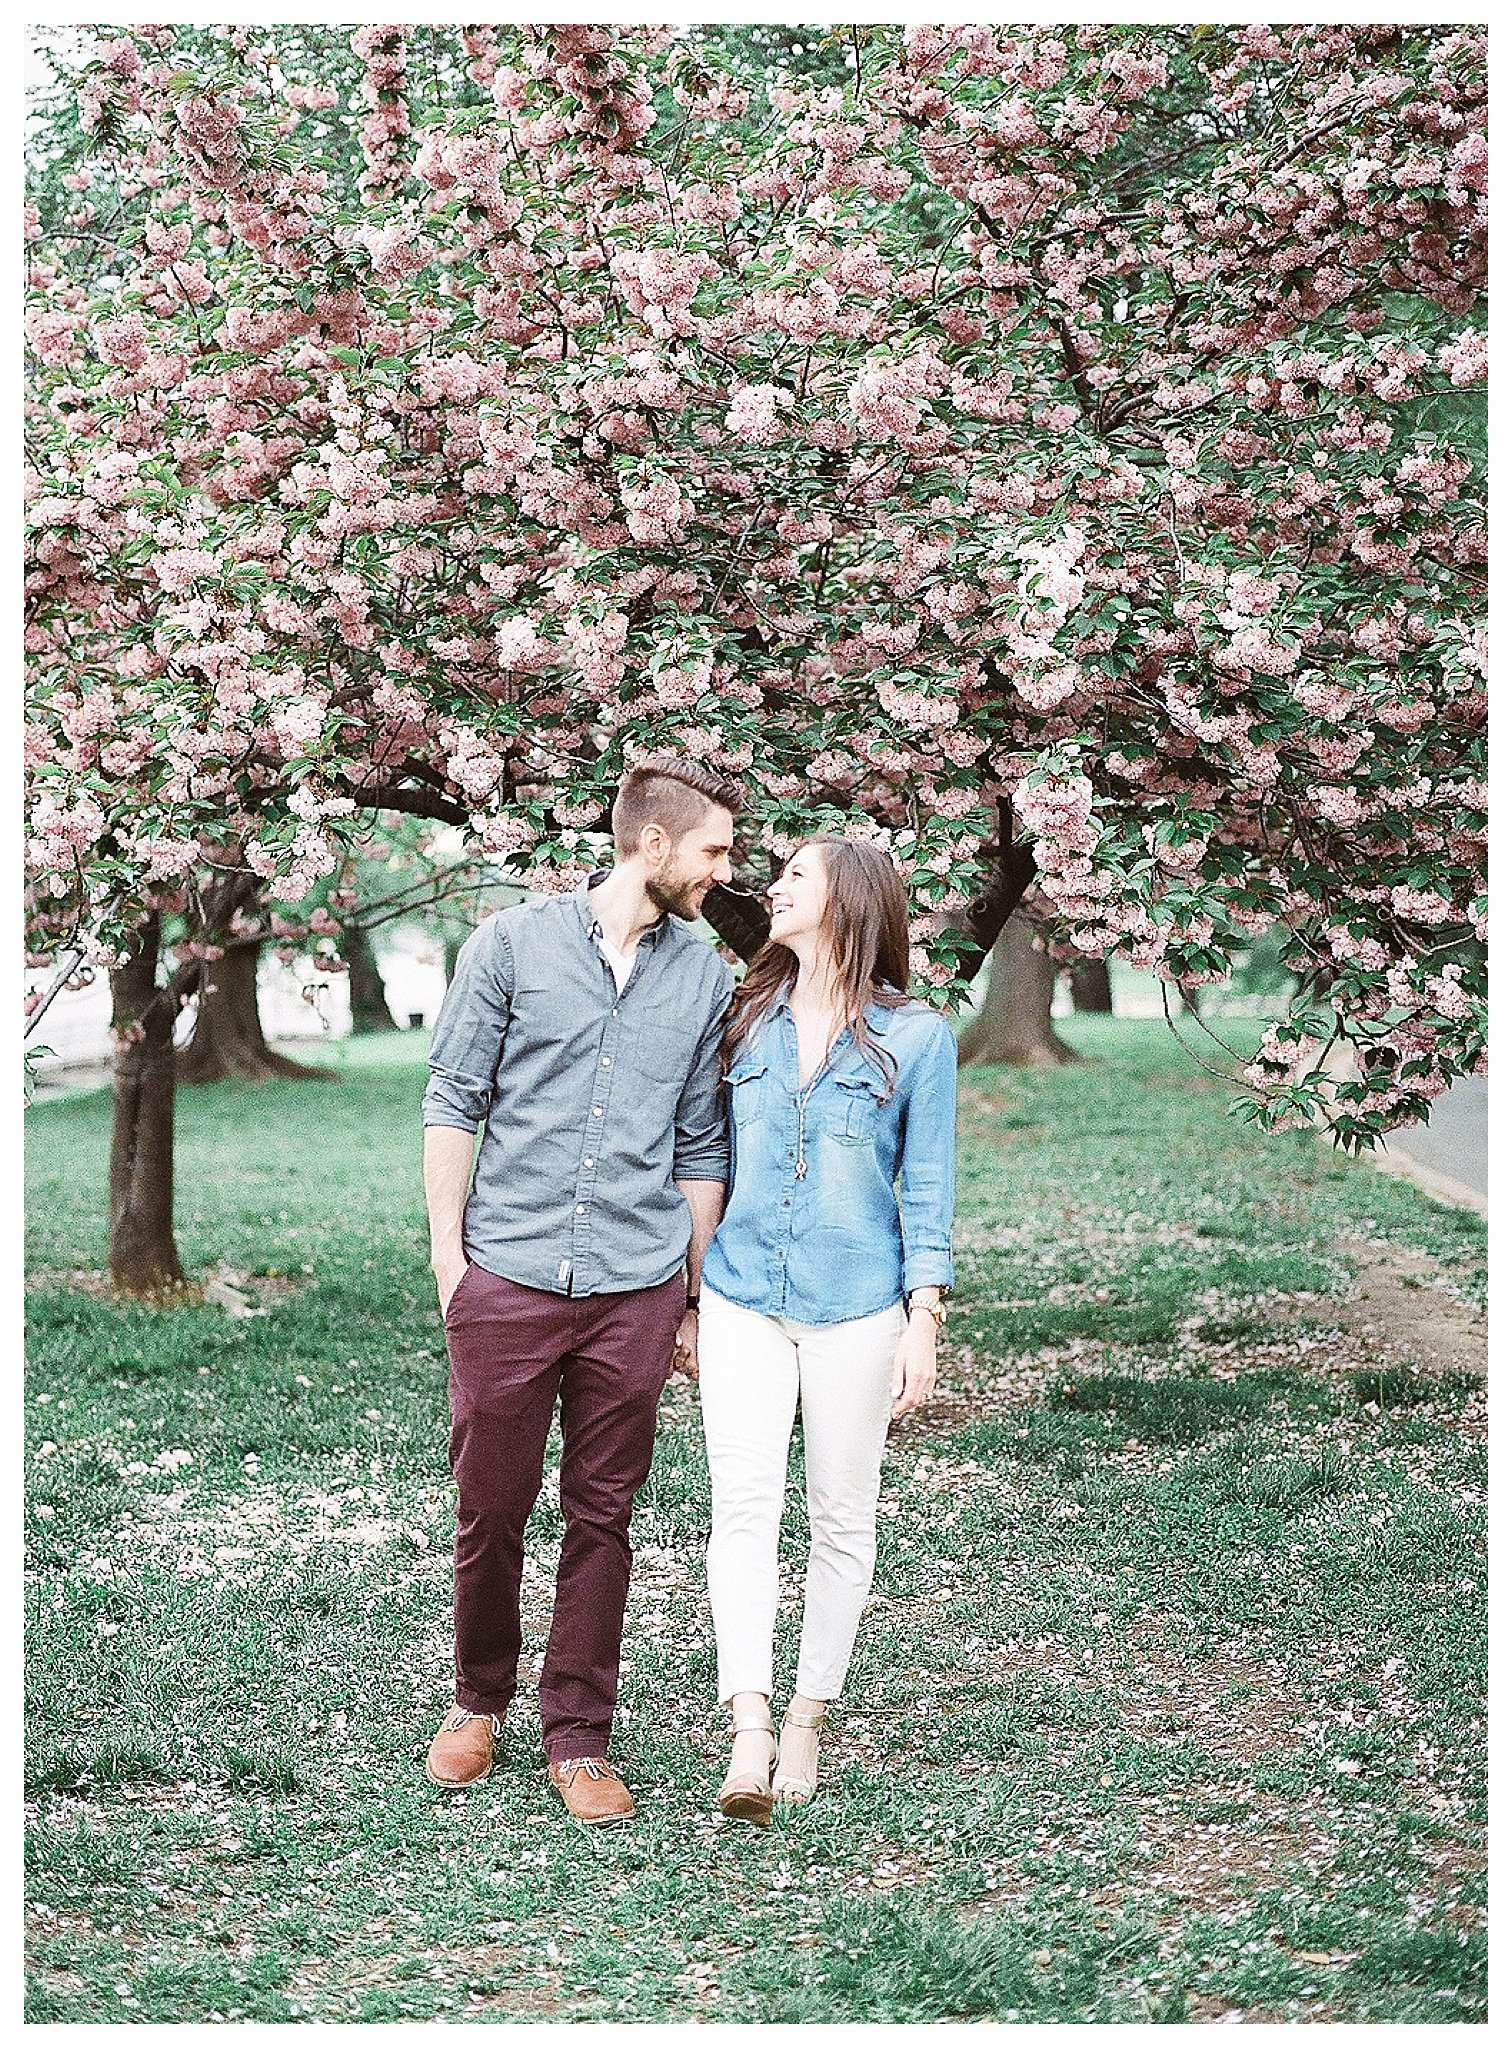 Cherry Blossom Engagement Photos Virginia Wedding Photographer Andrea Rodway Photography